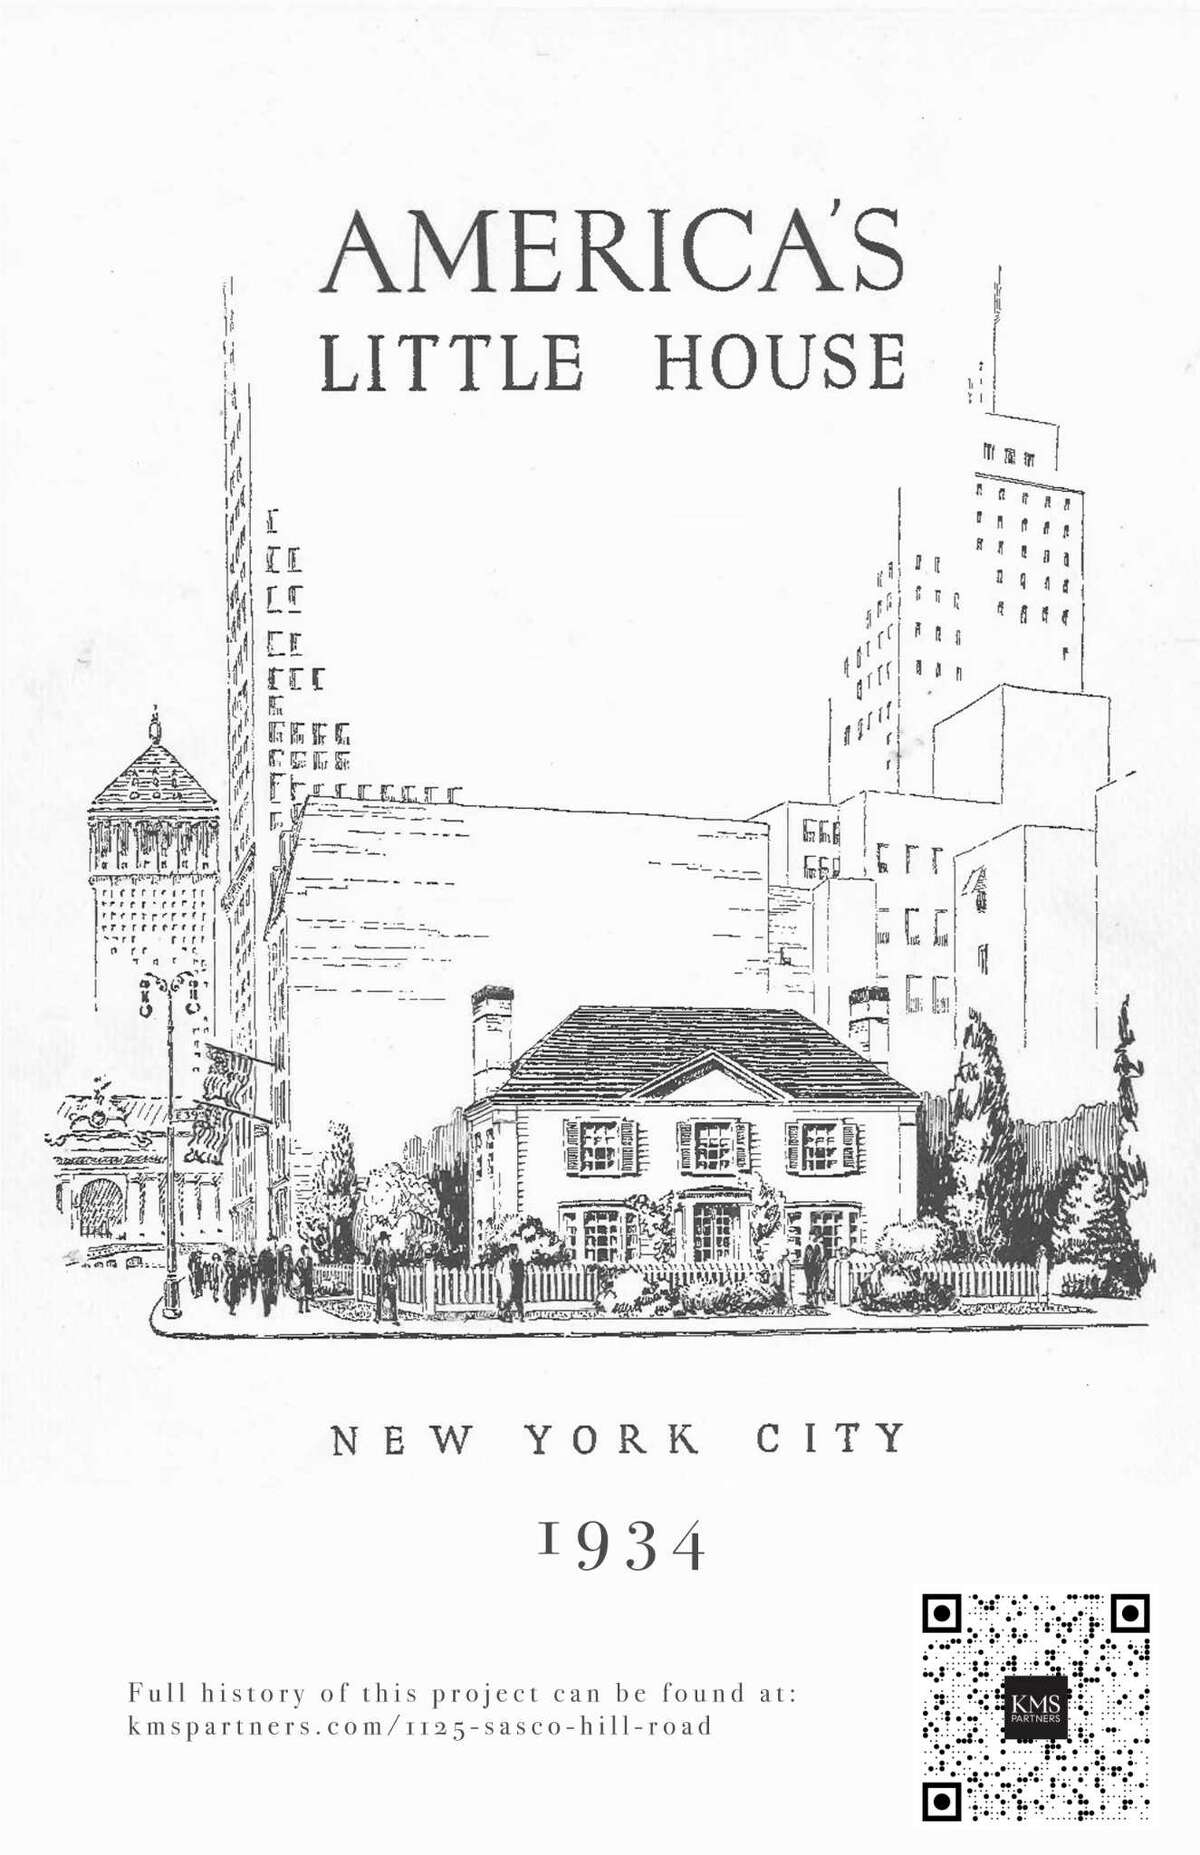 America's Little House smart phone scan. In 1934 the New York Committee of Better Homes in America, Inc., in cooperation with the Columbia Broadcasting System, introduced the public to a wave of the future in home ownership. A residential prototype was built on the corner of 39th Street and Park Avenue in New York City that year.